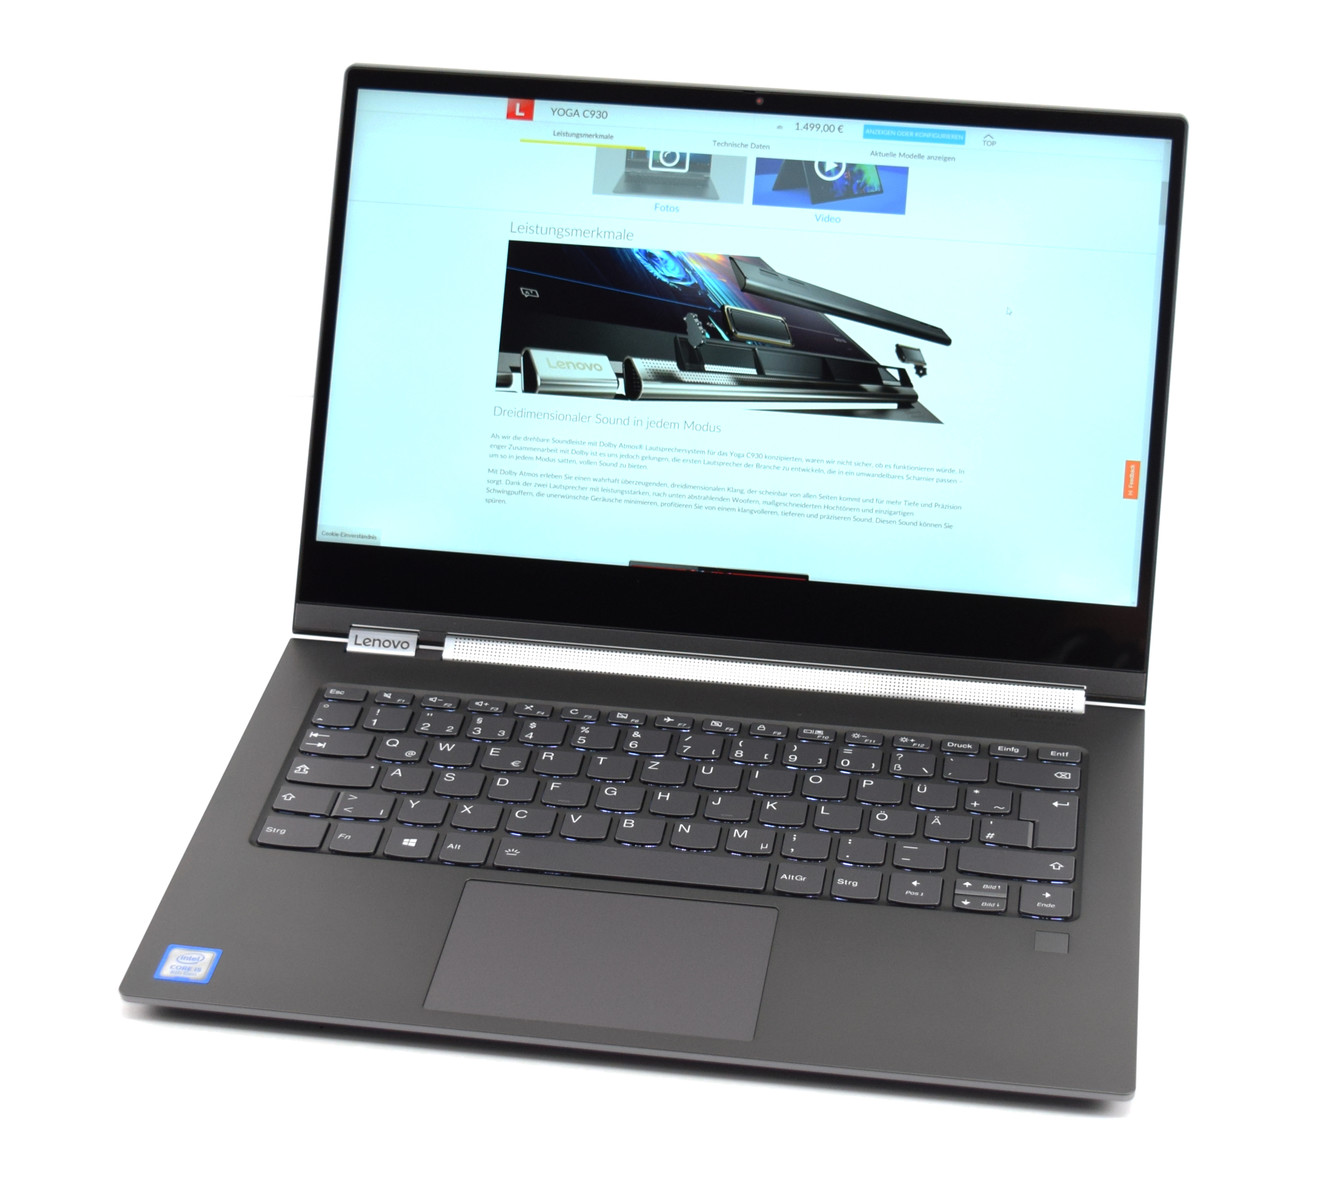 Lenovo Yoga C930-13IKB - Notebookcheck net External Reviews